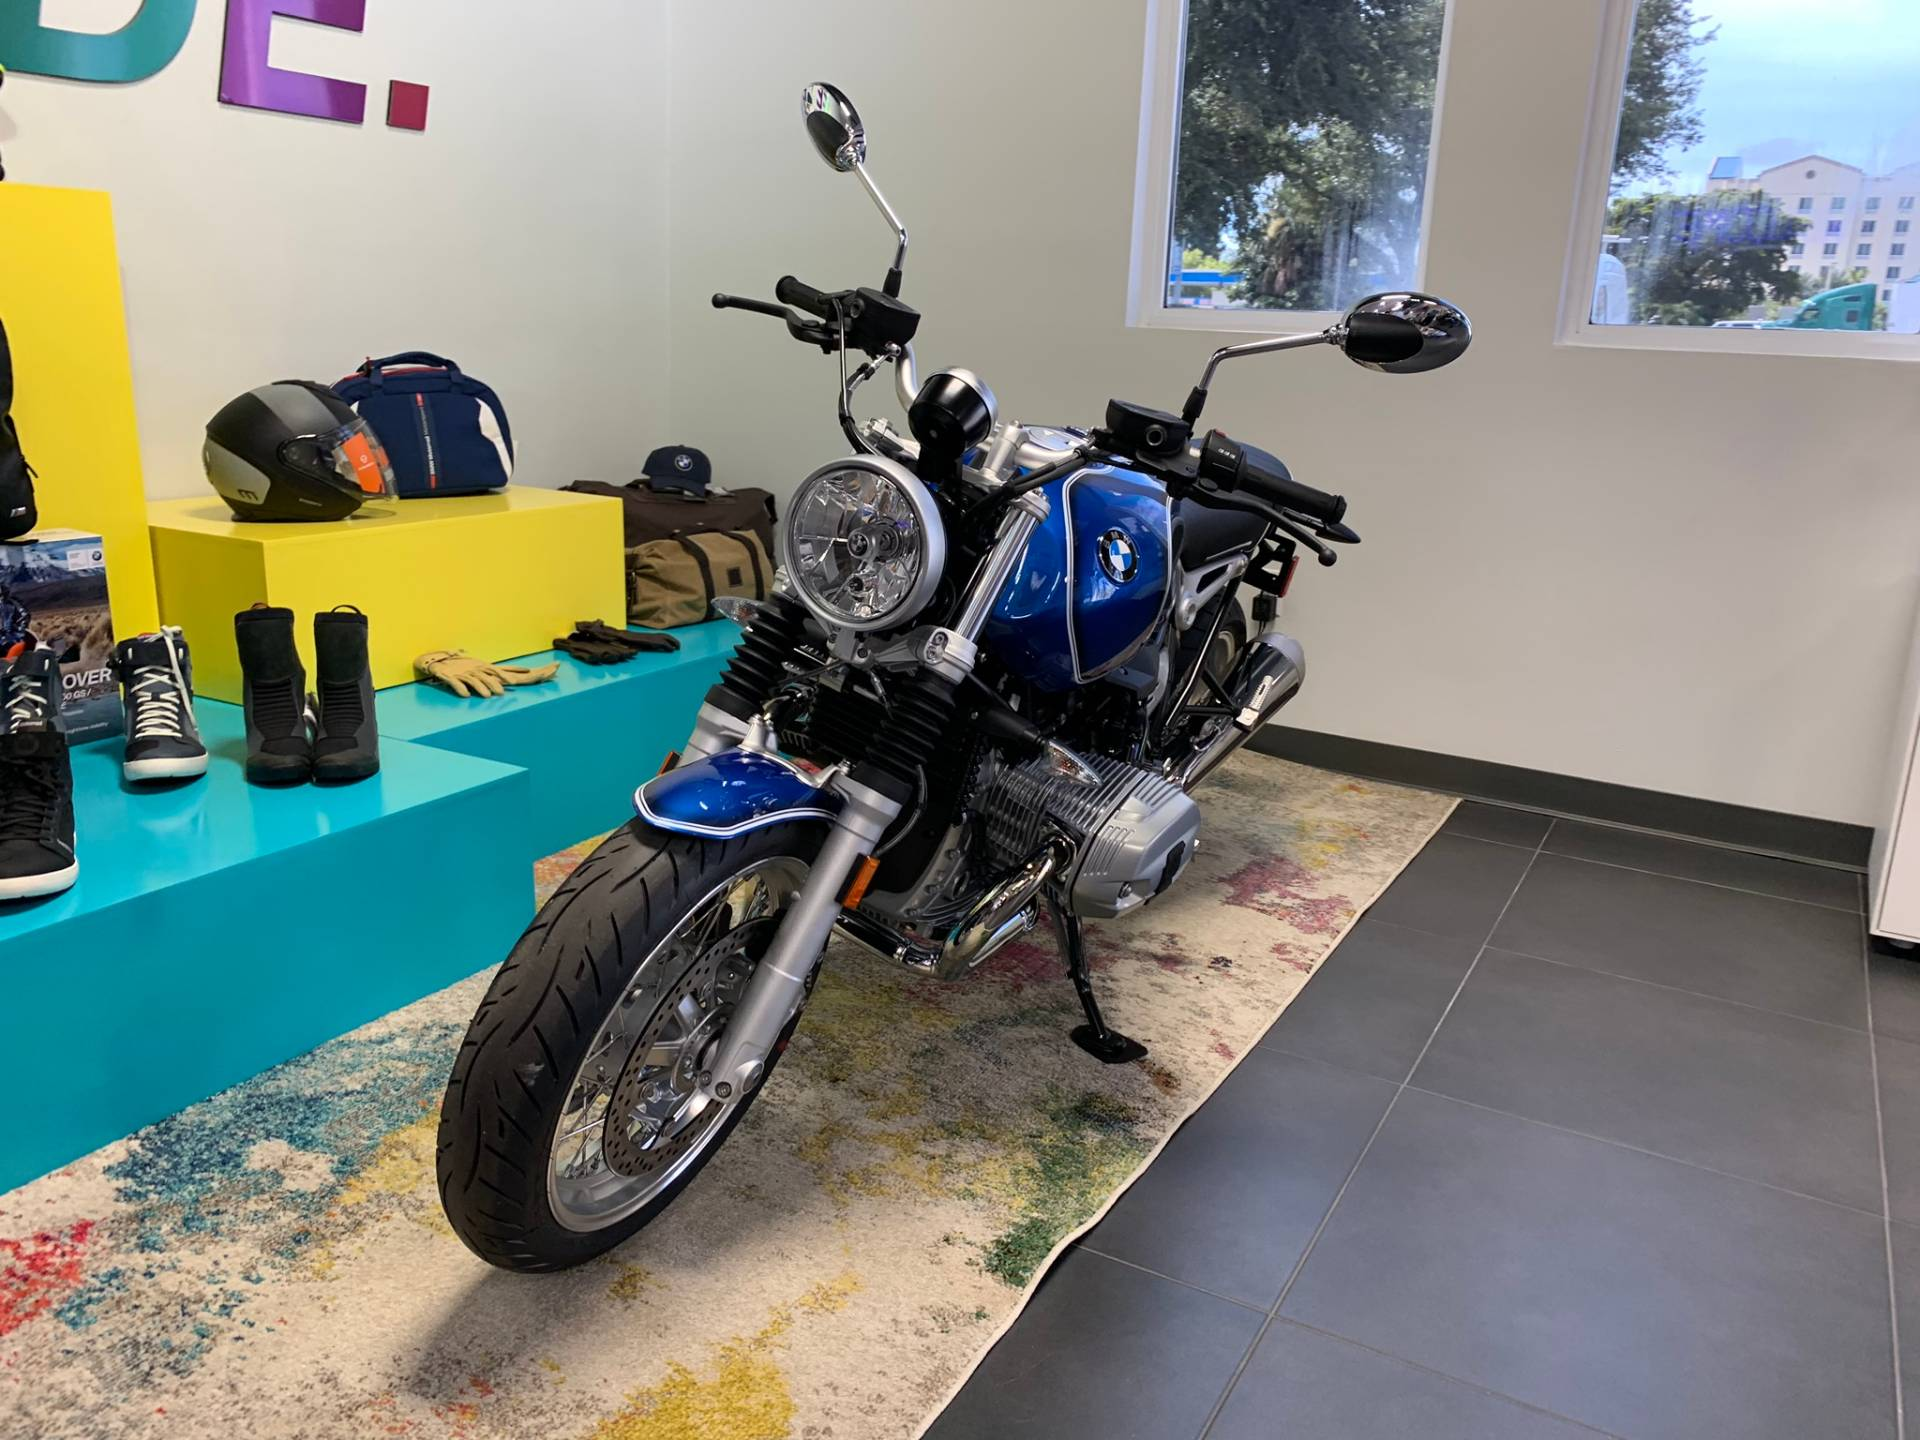 New 2020 2019 BMW R NineT for sale, BMW for sale, BMW Motorcycle Café Racer, new BMW Caffe, Cafe Racer, BMW. BMW Motorcycles of Miami, Motorcycles of Miami, Motorcycles Miami, New Motorcycles, Used Motorcycles, pre-owned. #BMWMotorcyclesOfMiami #MotorcyclesOfMiami. - Photo 39